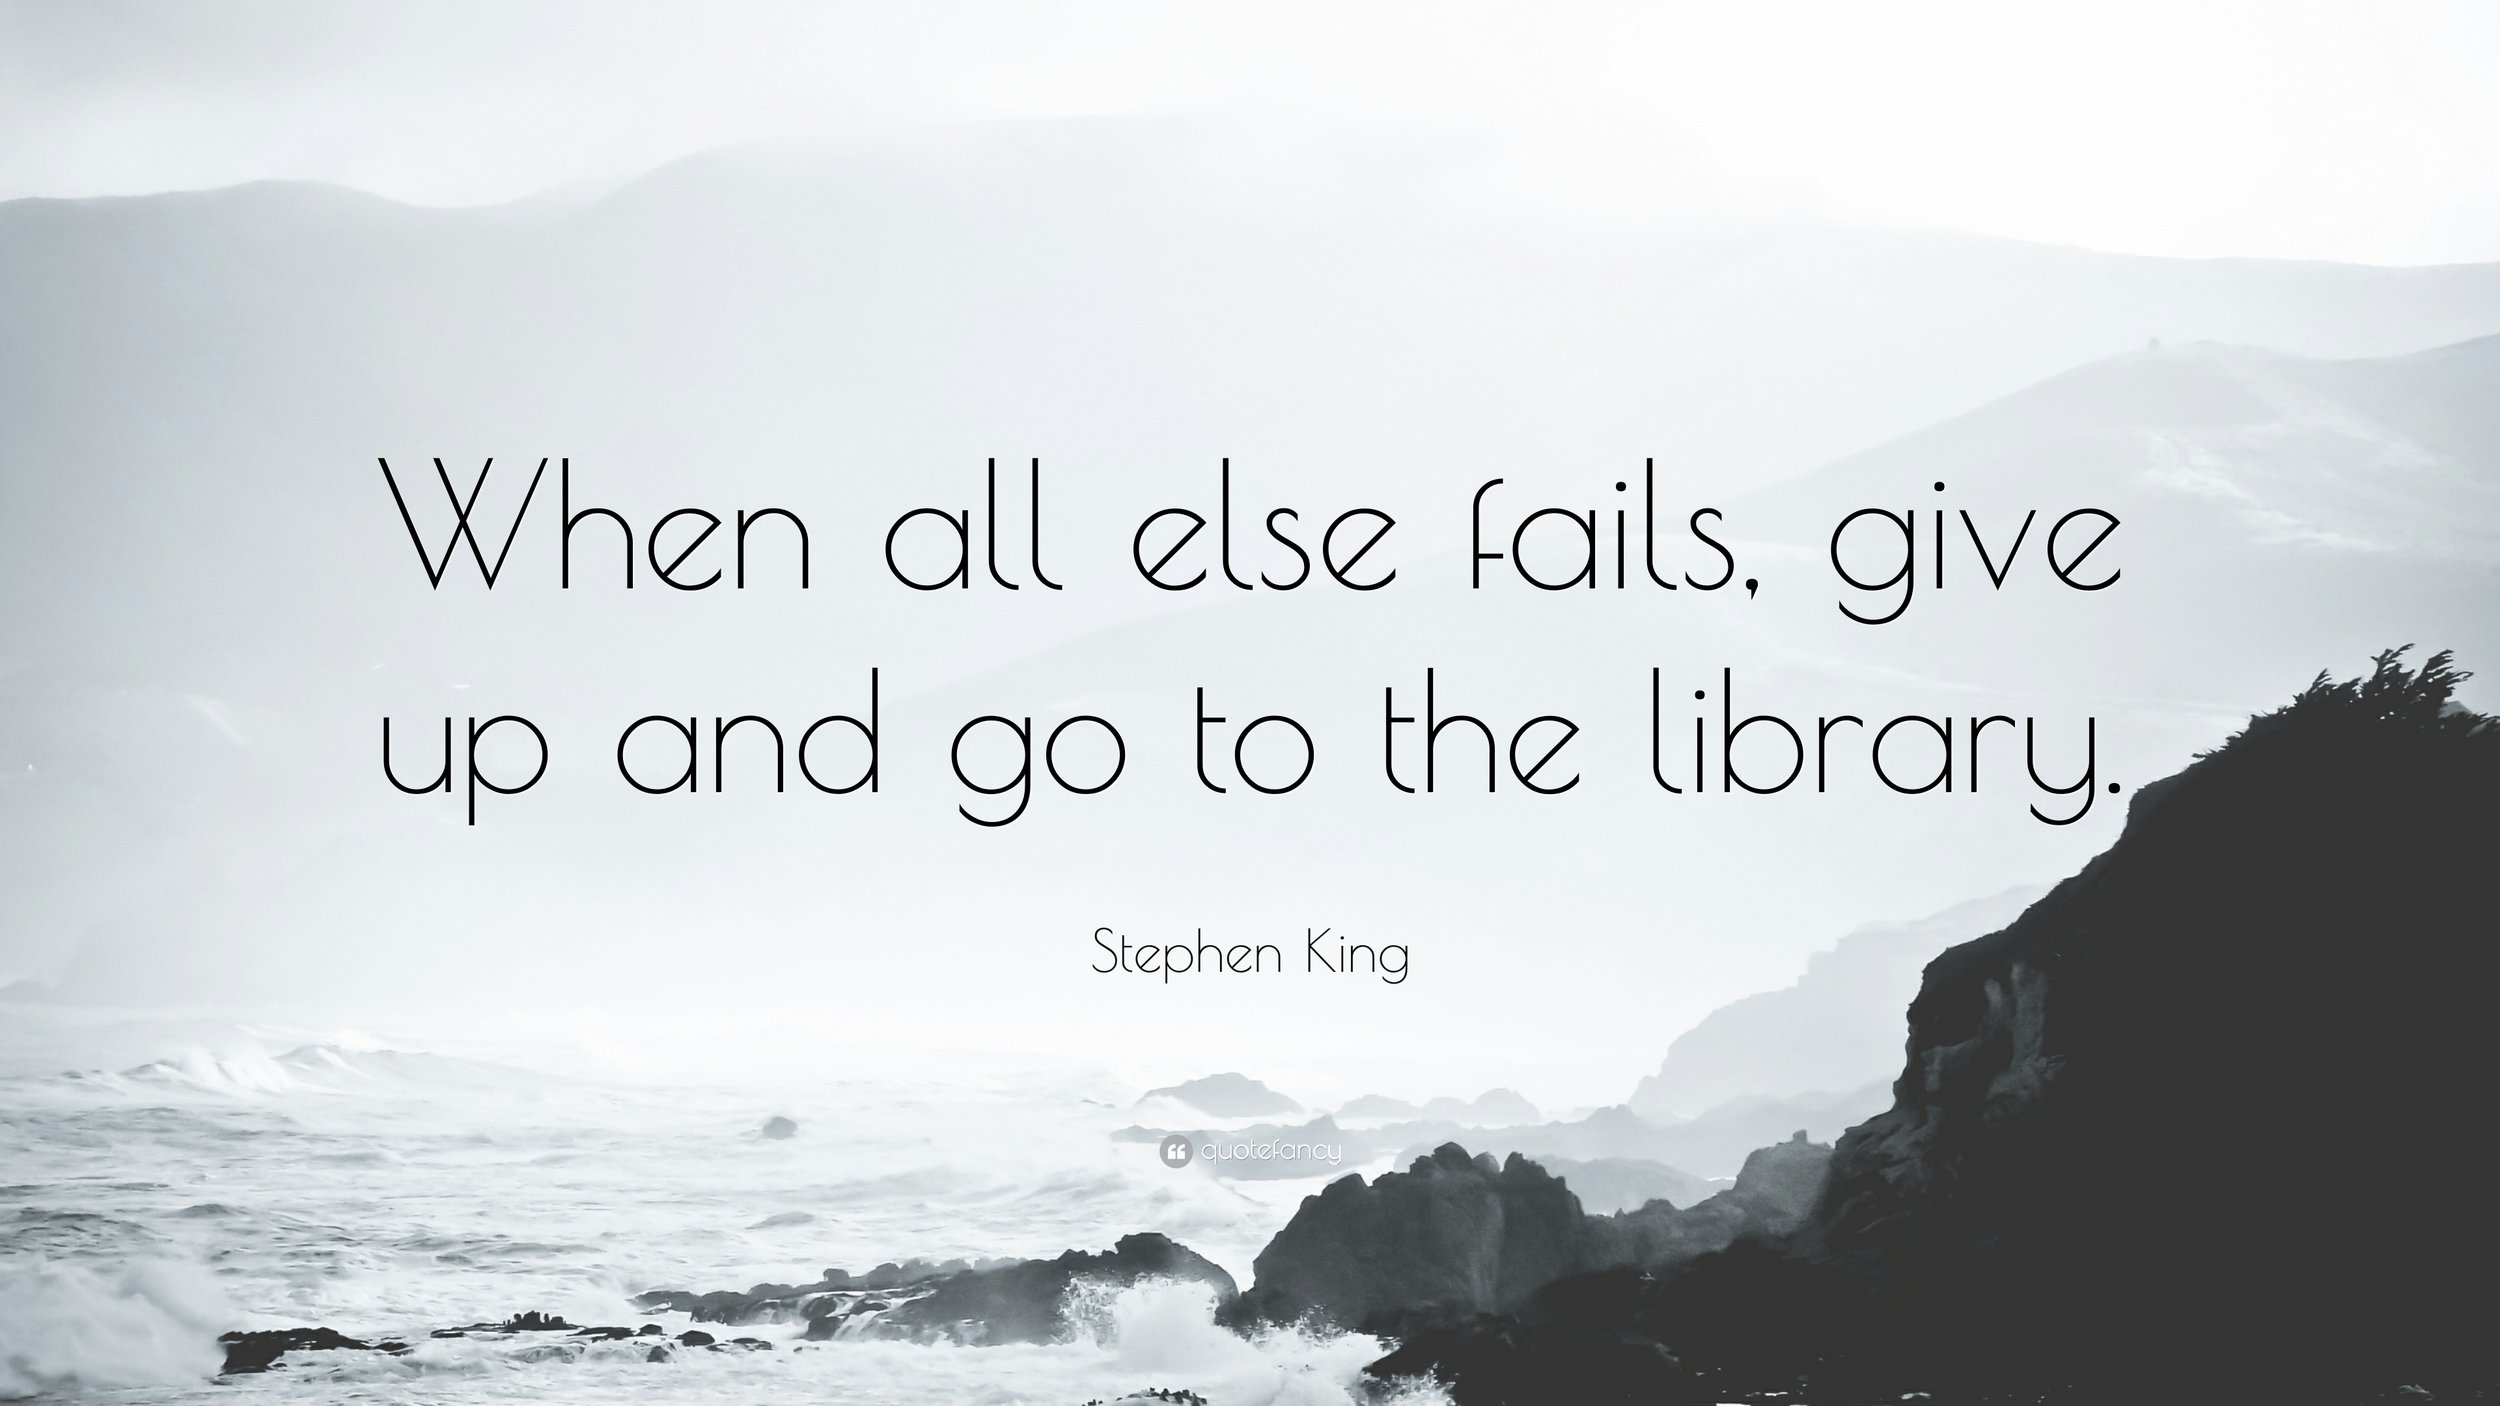 77413-Stephen-King-Quote-When-all-else-fails-give-up-and-go-to-the.jpg